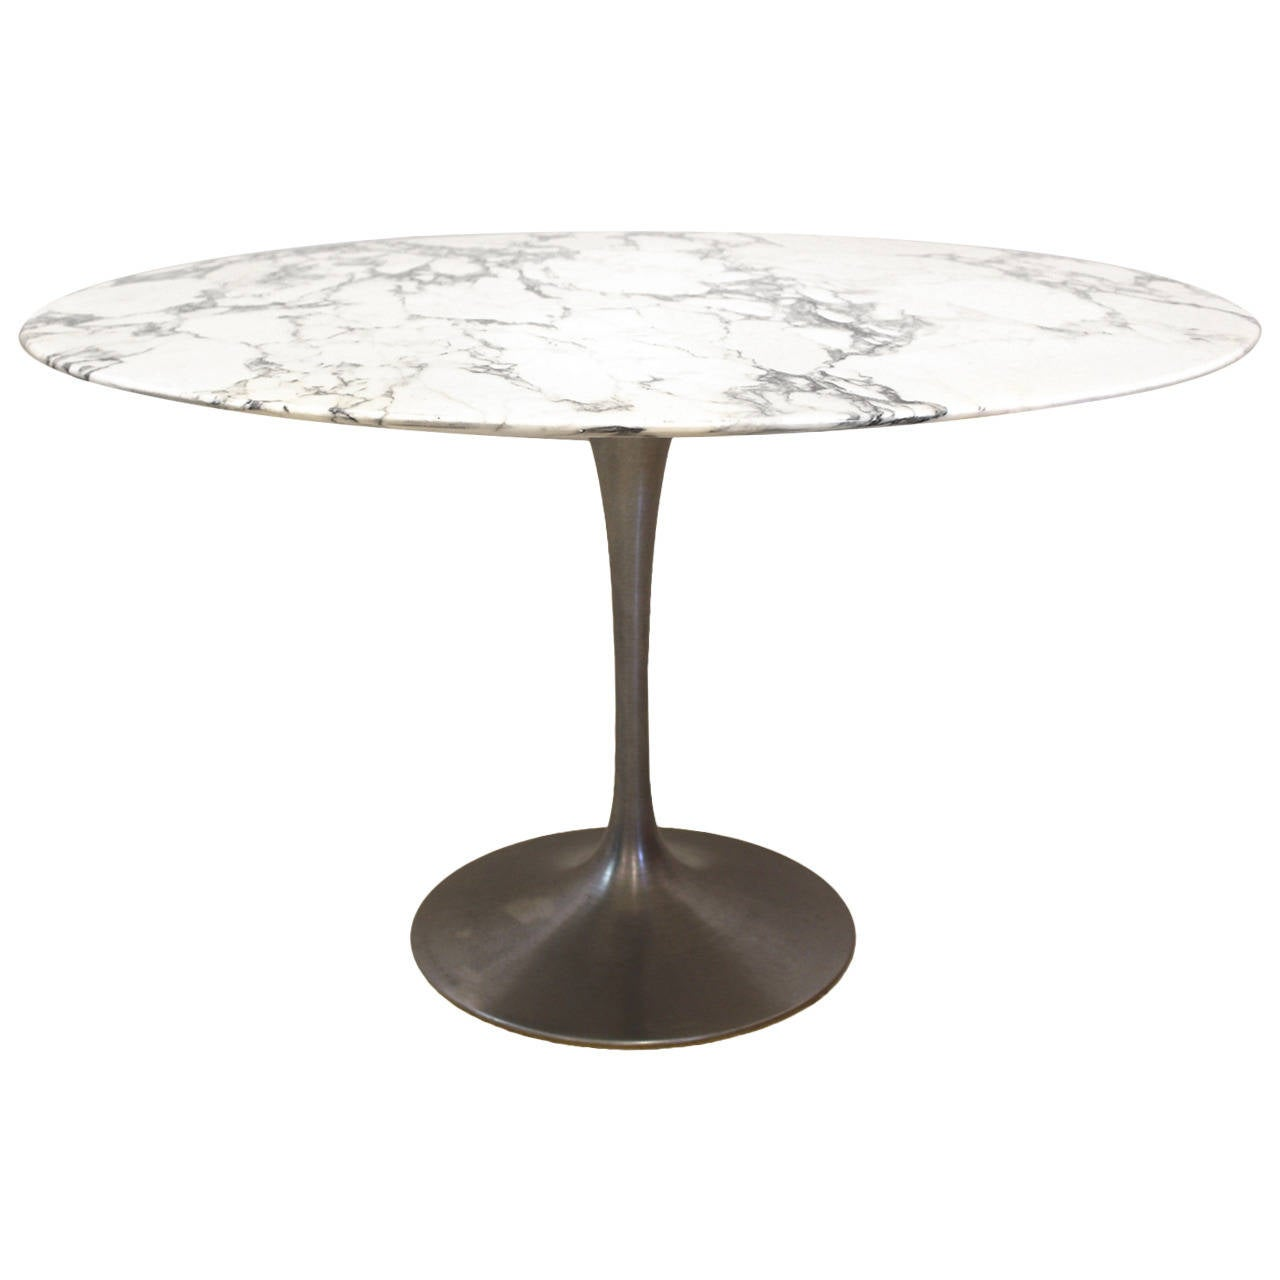 Tulip Dining Table By Eero Saarinen 1956 At 1stdibs